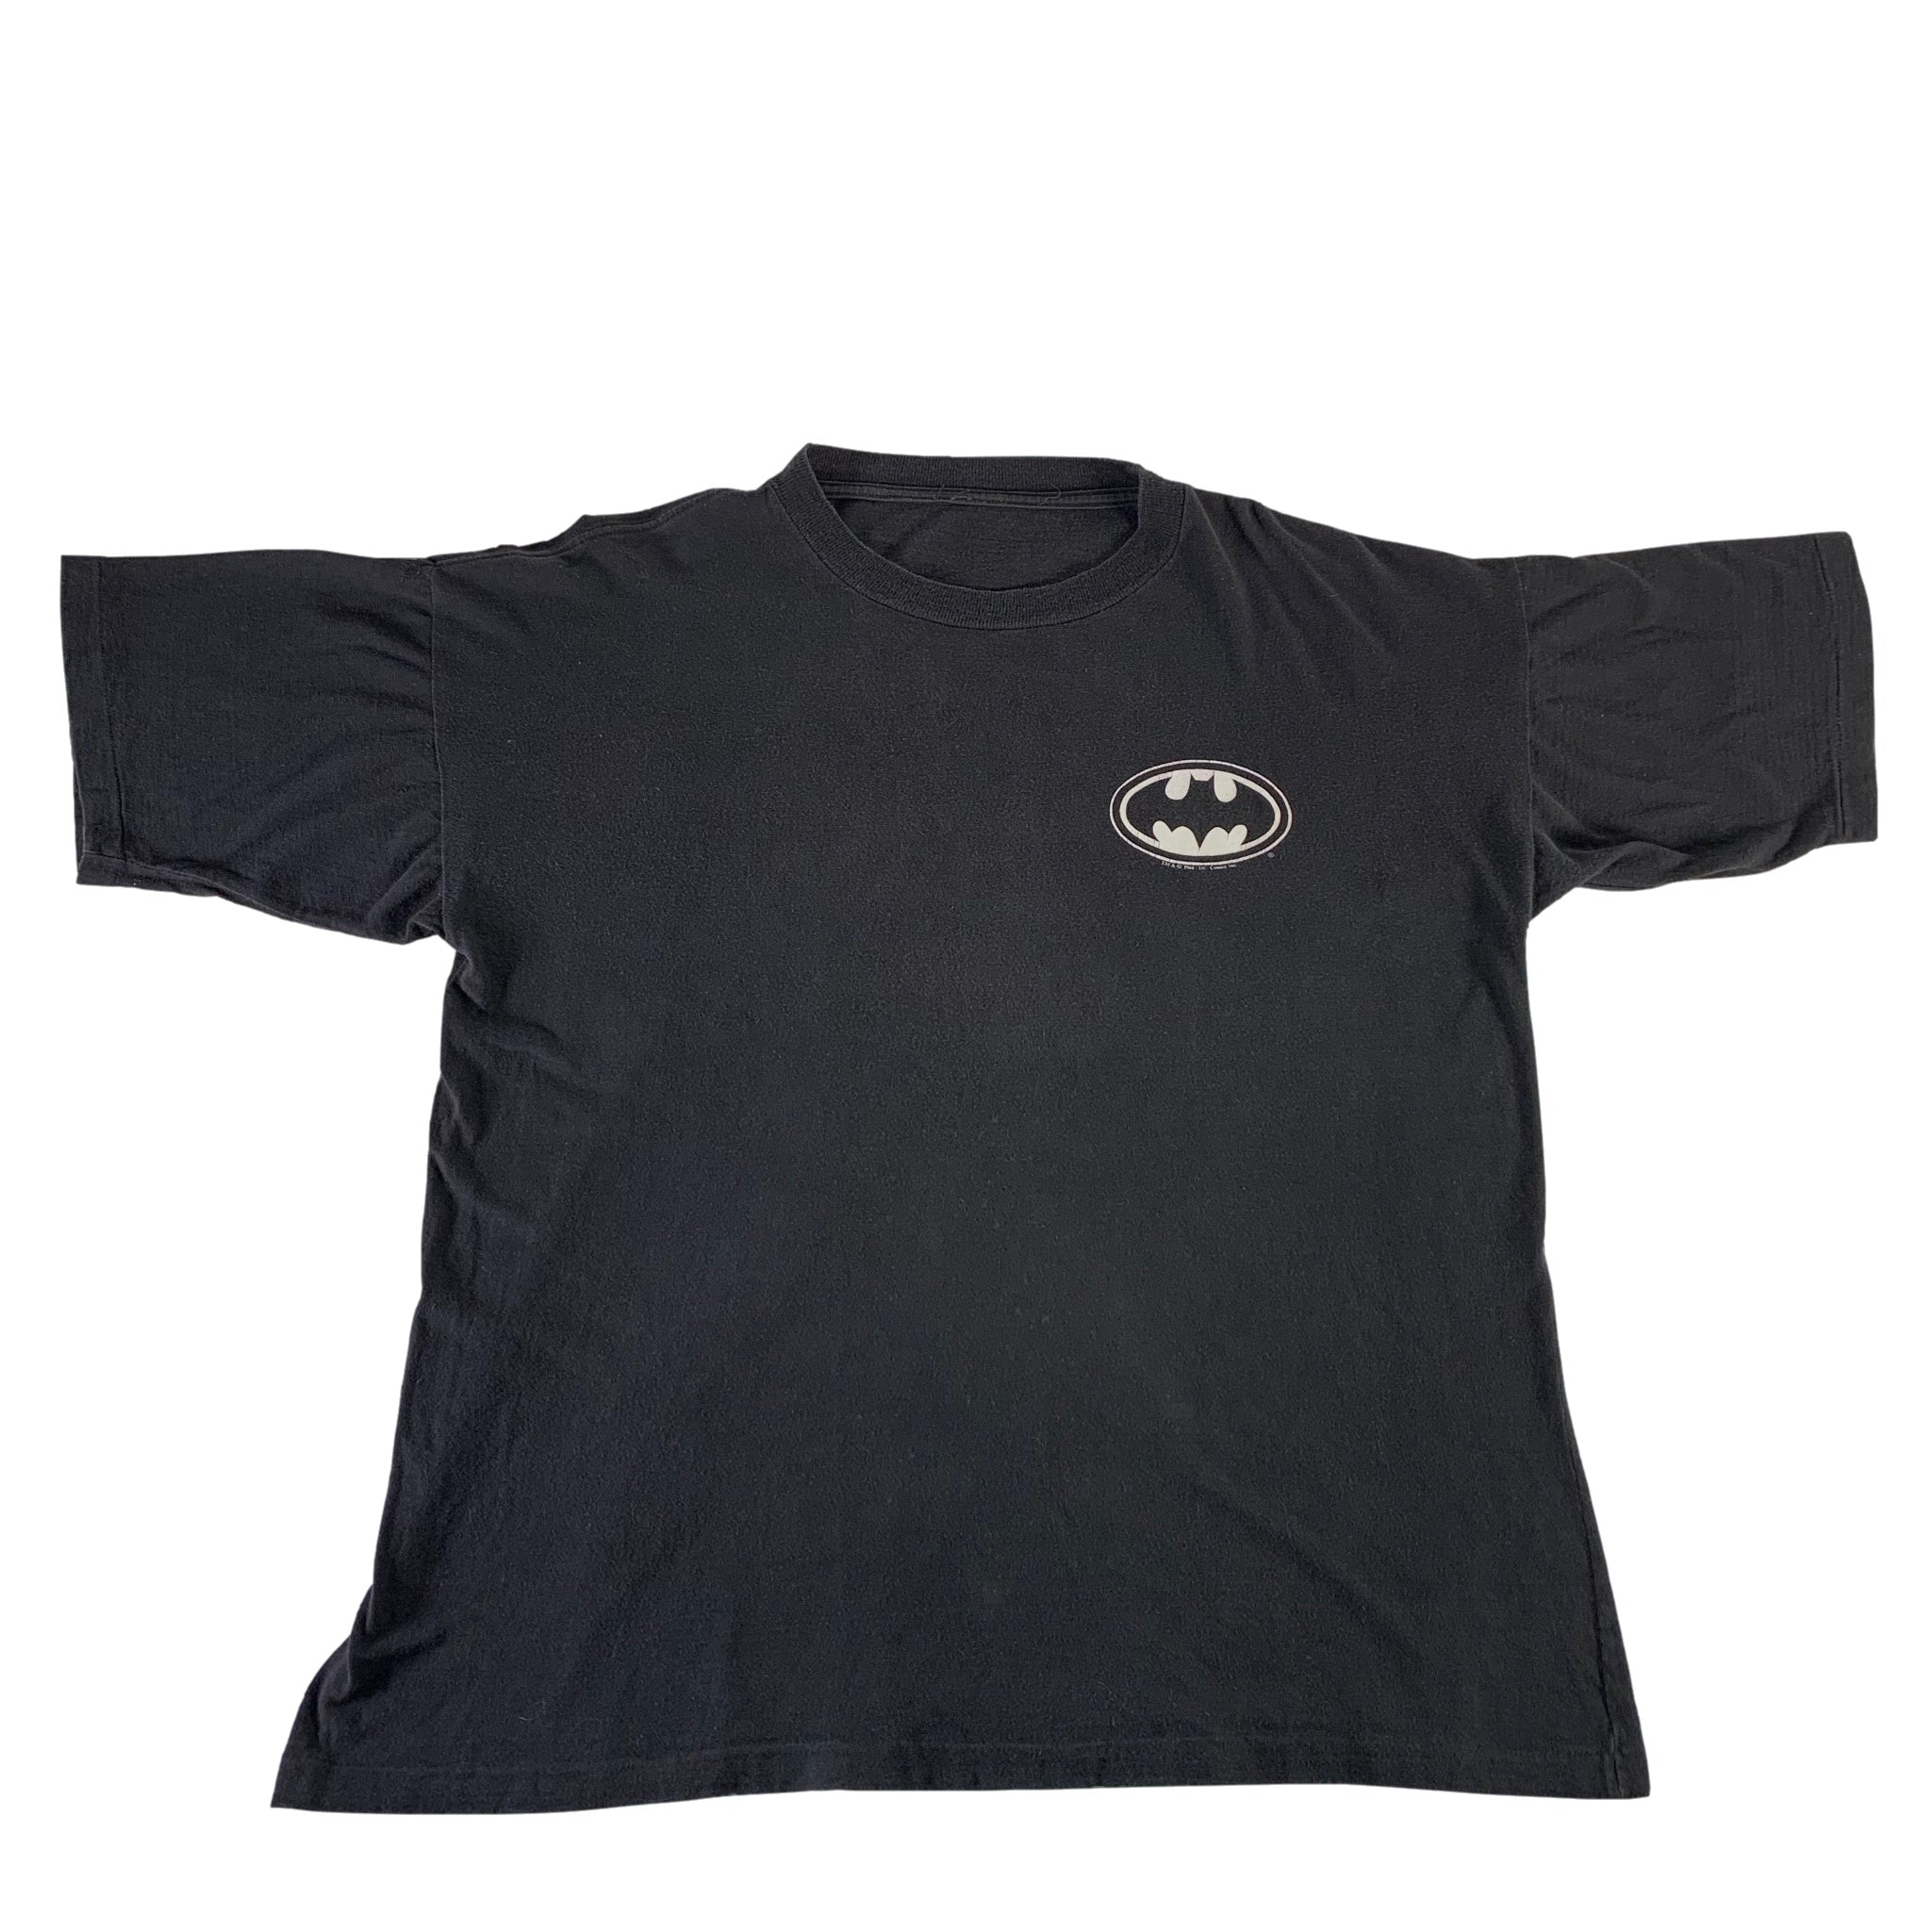 "Vintage Batman ""Batman Returns"" T-Shirt"